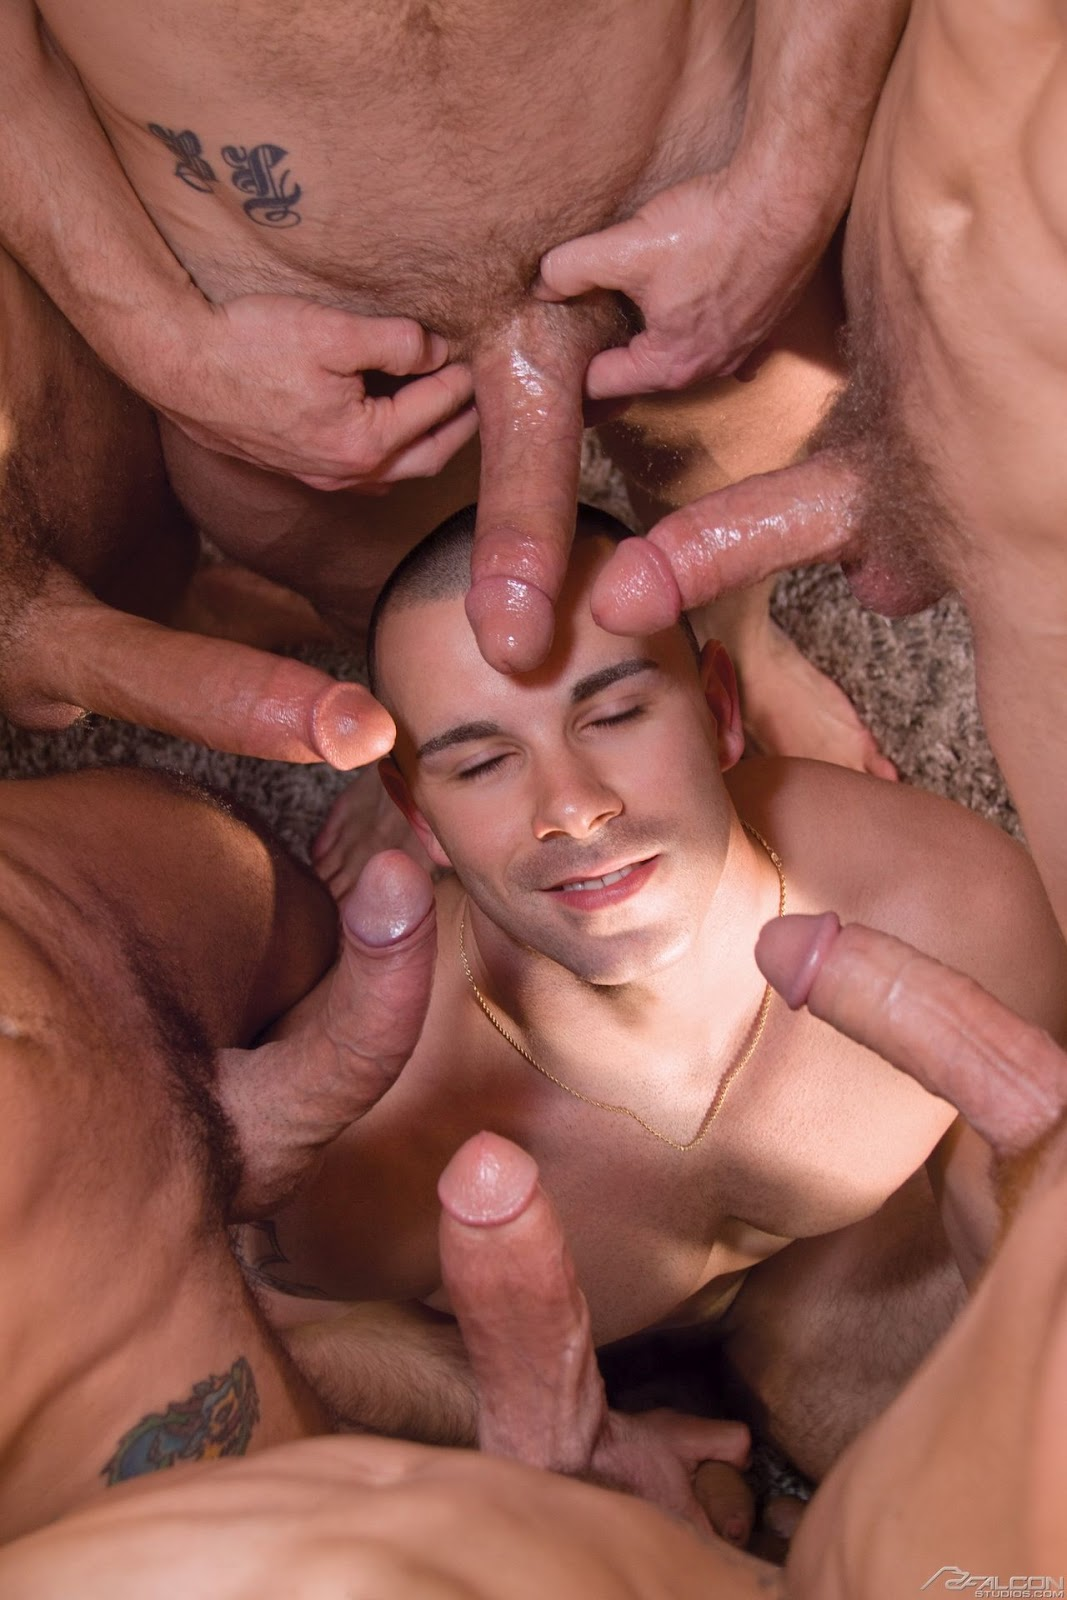 Kinky sucking dick orgy gay